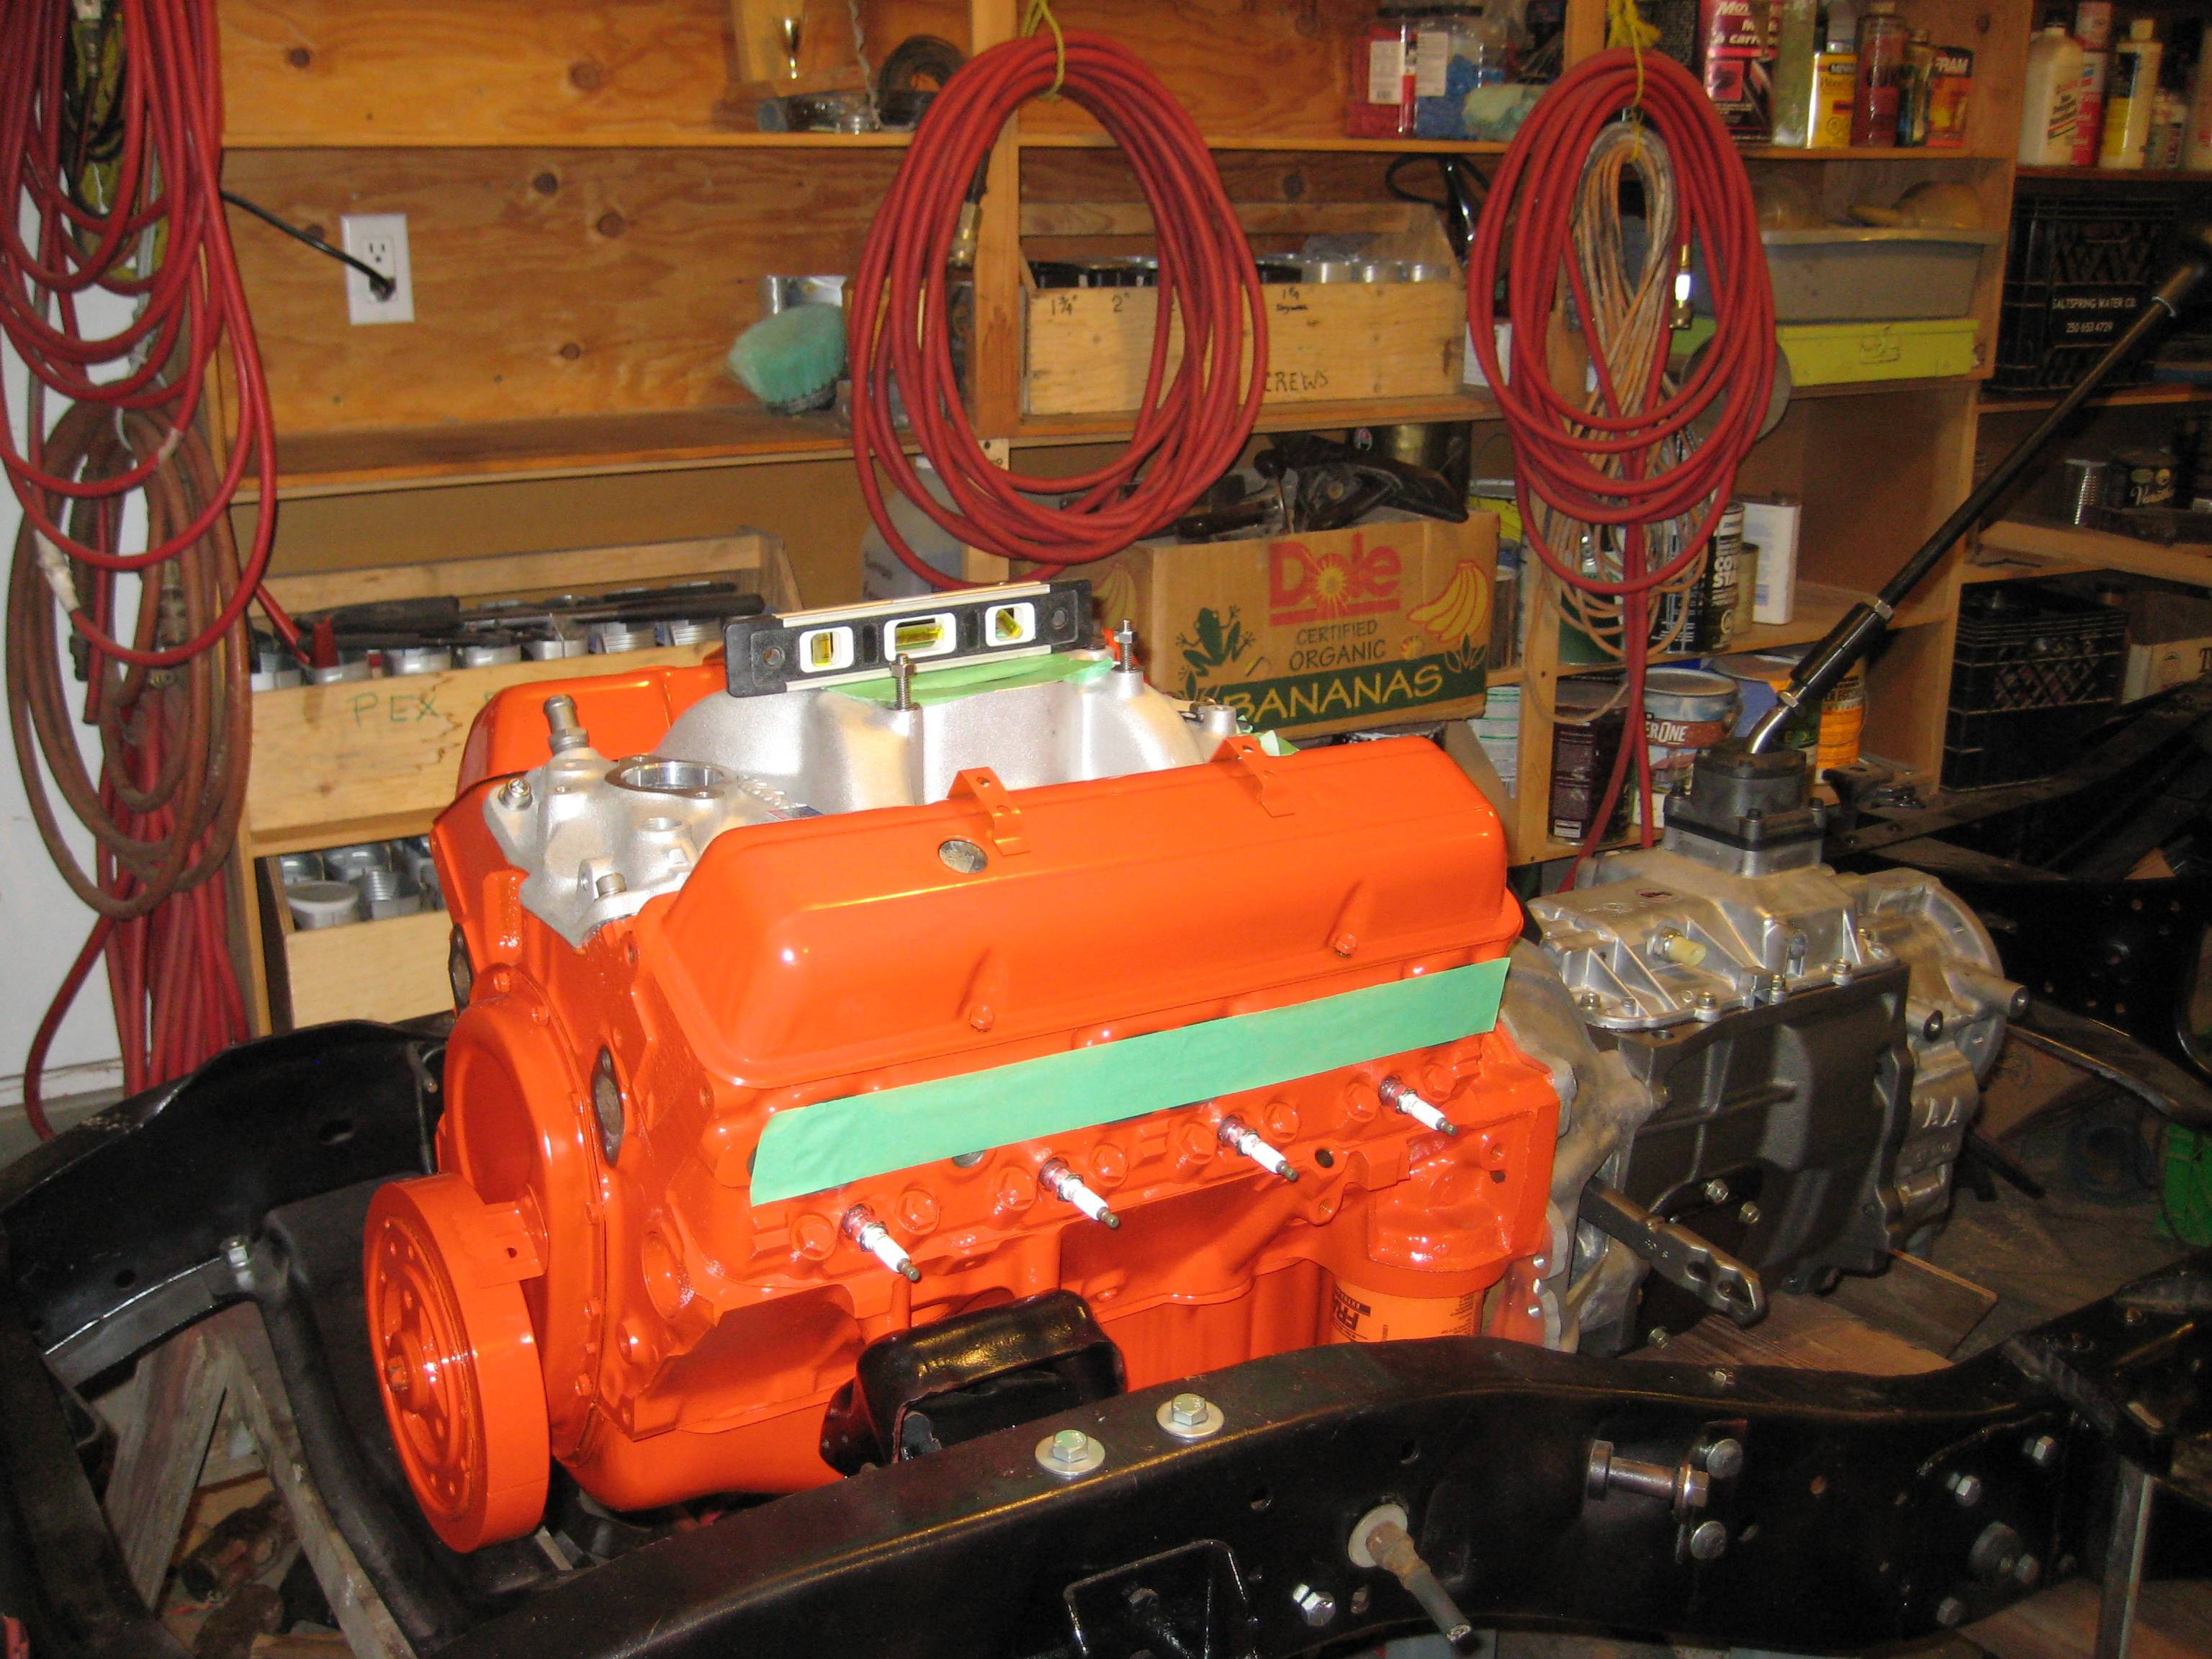 Nv4500 In A K10 20 The 1947 Present Chevrolet Gmc Truck 5 Speed Transmission Case Diagram Advance Adaptor B Housing From Smart Parts Kansas City Mo They Also Modified Output Shaft For T C Adaption Np205